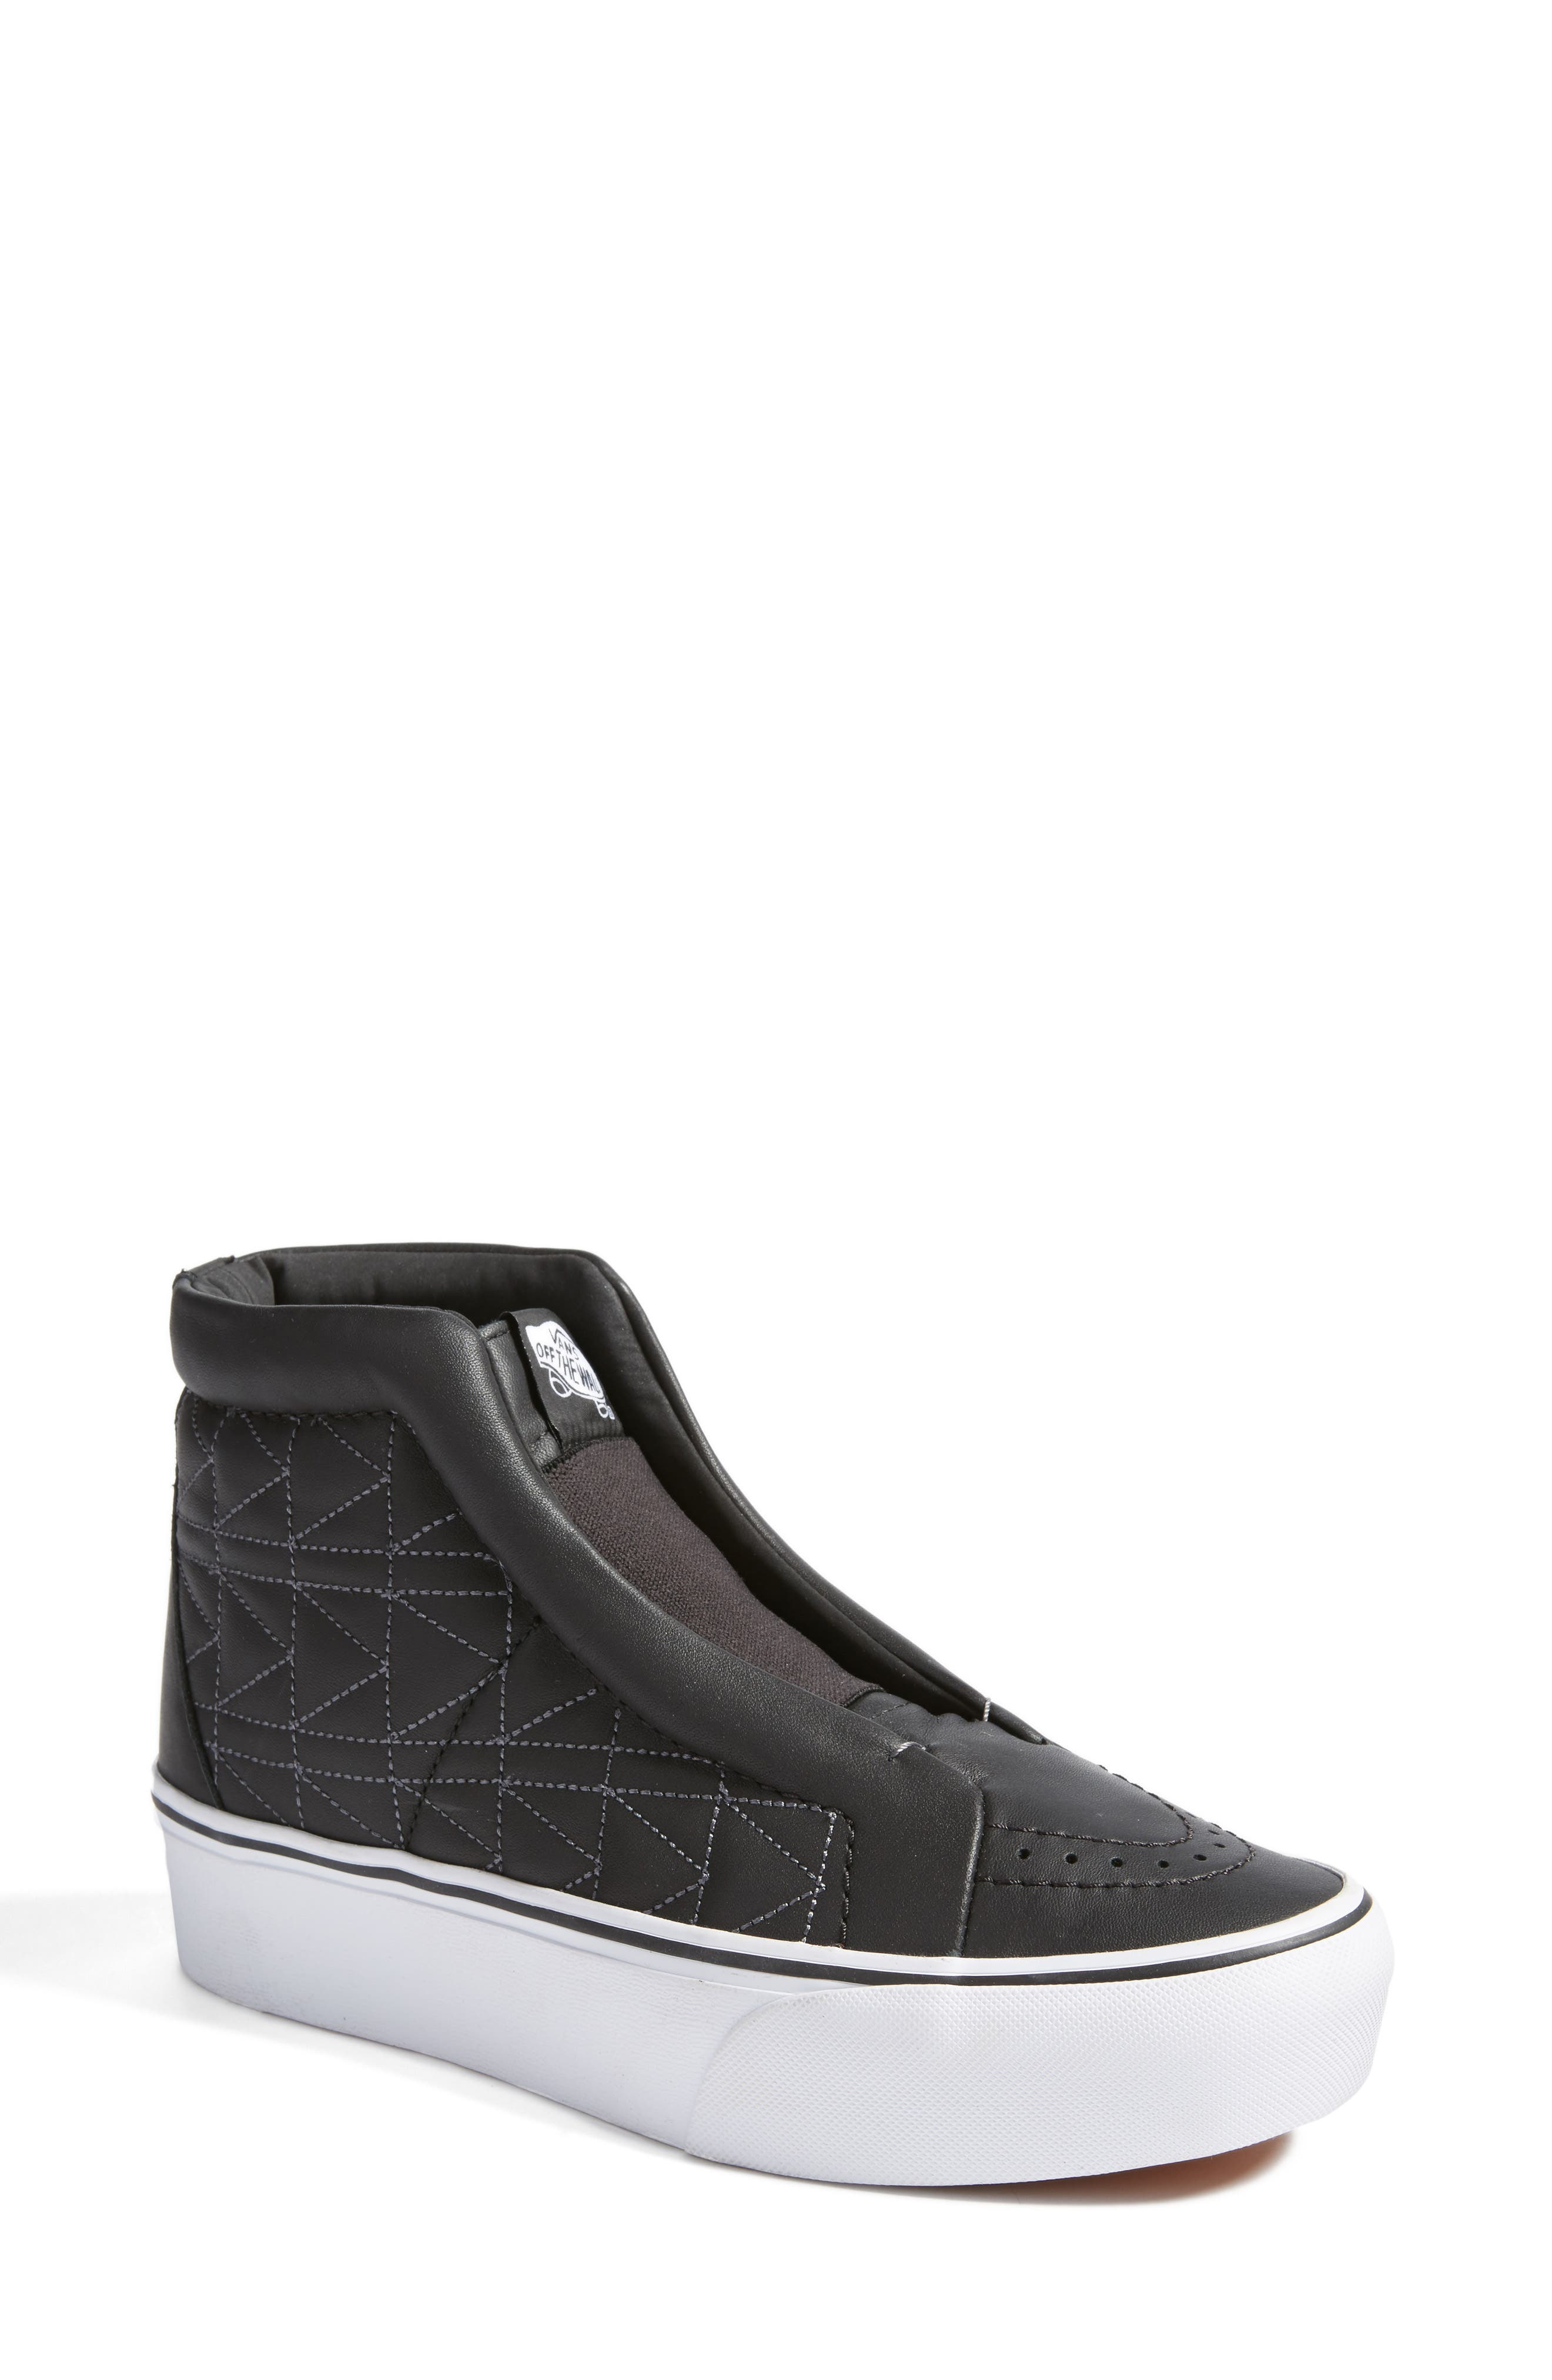 x KARL LAGERFELD SK8-Hi Leather Sneaker,                         Main,                         color, 001